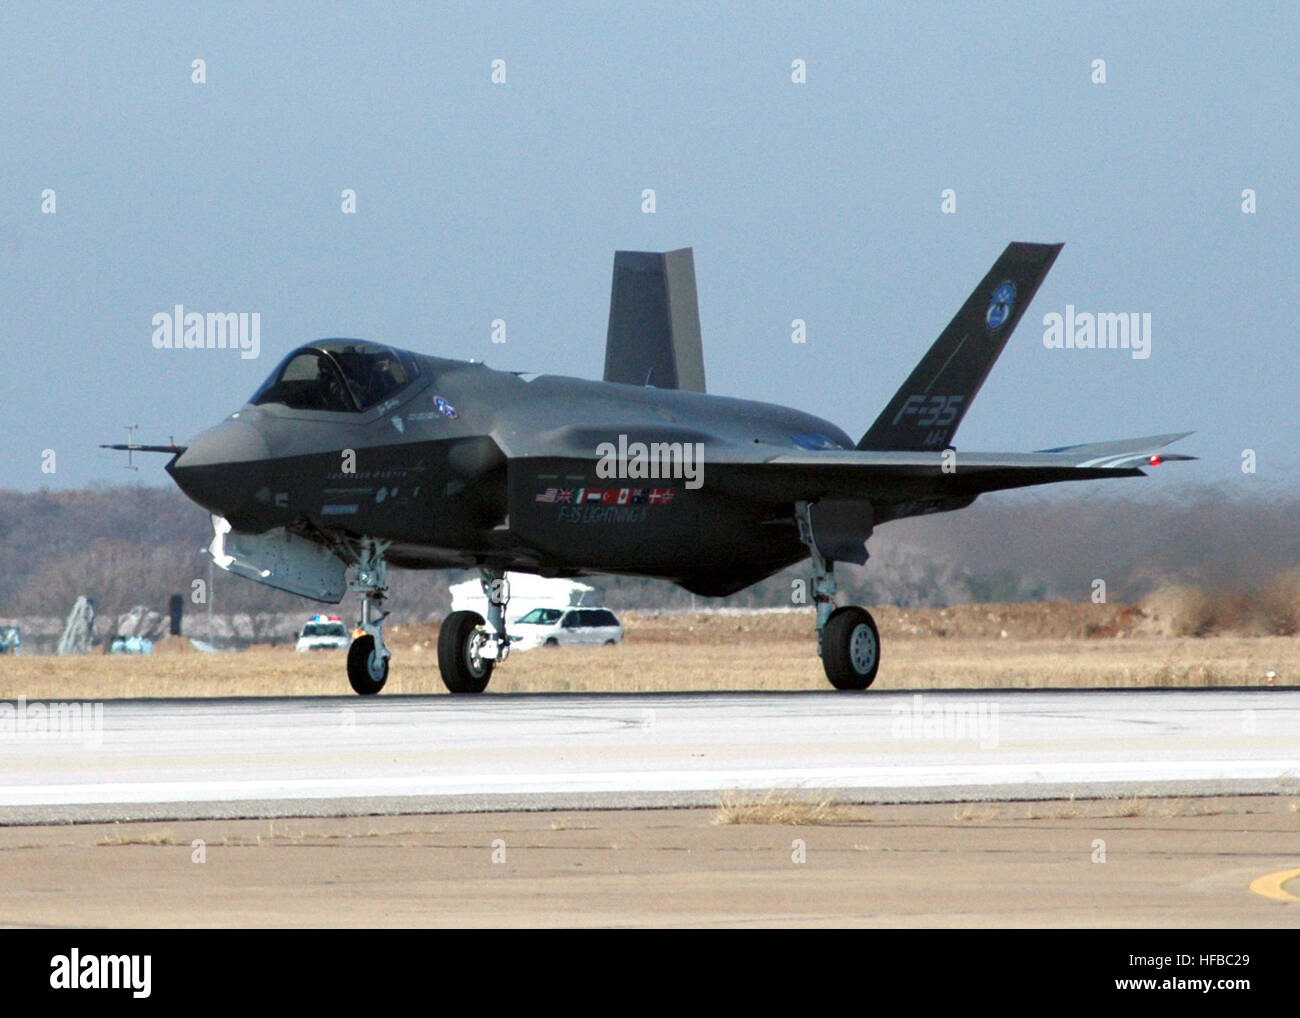 061215-N-8053S-229 Fort Worth, Texas (Dec. 15, 2006) - The F-35 Joint Strike Fighter Lightning II, built by Lockheed - Stock Image